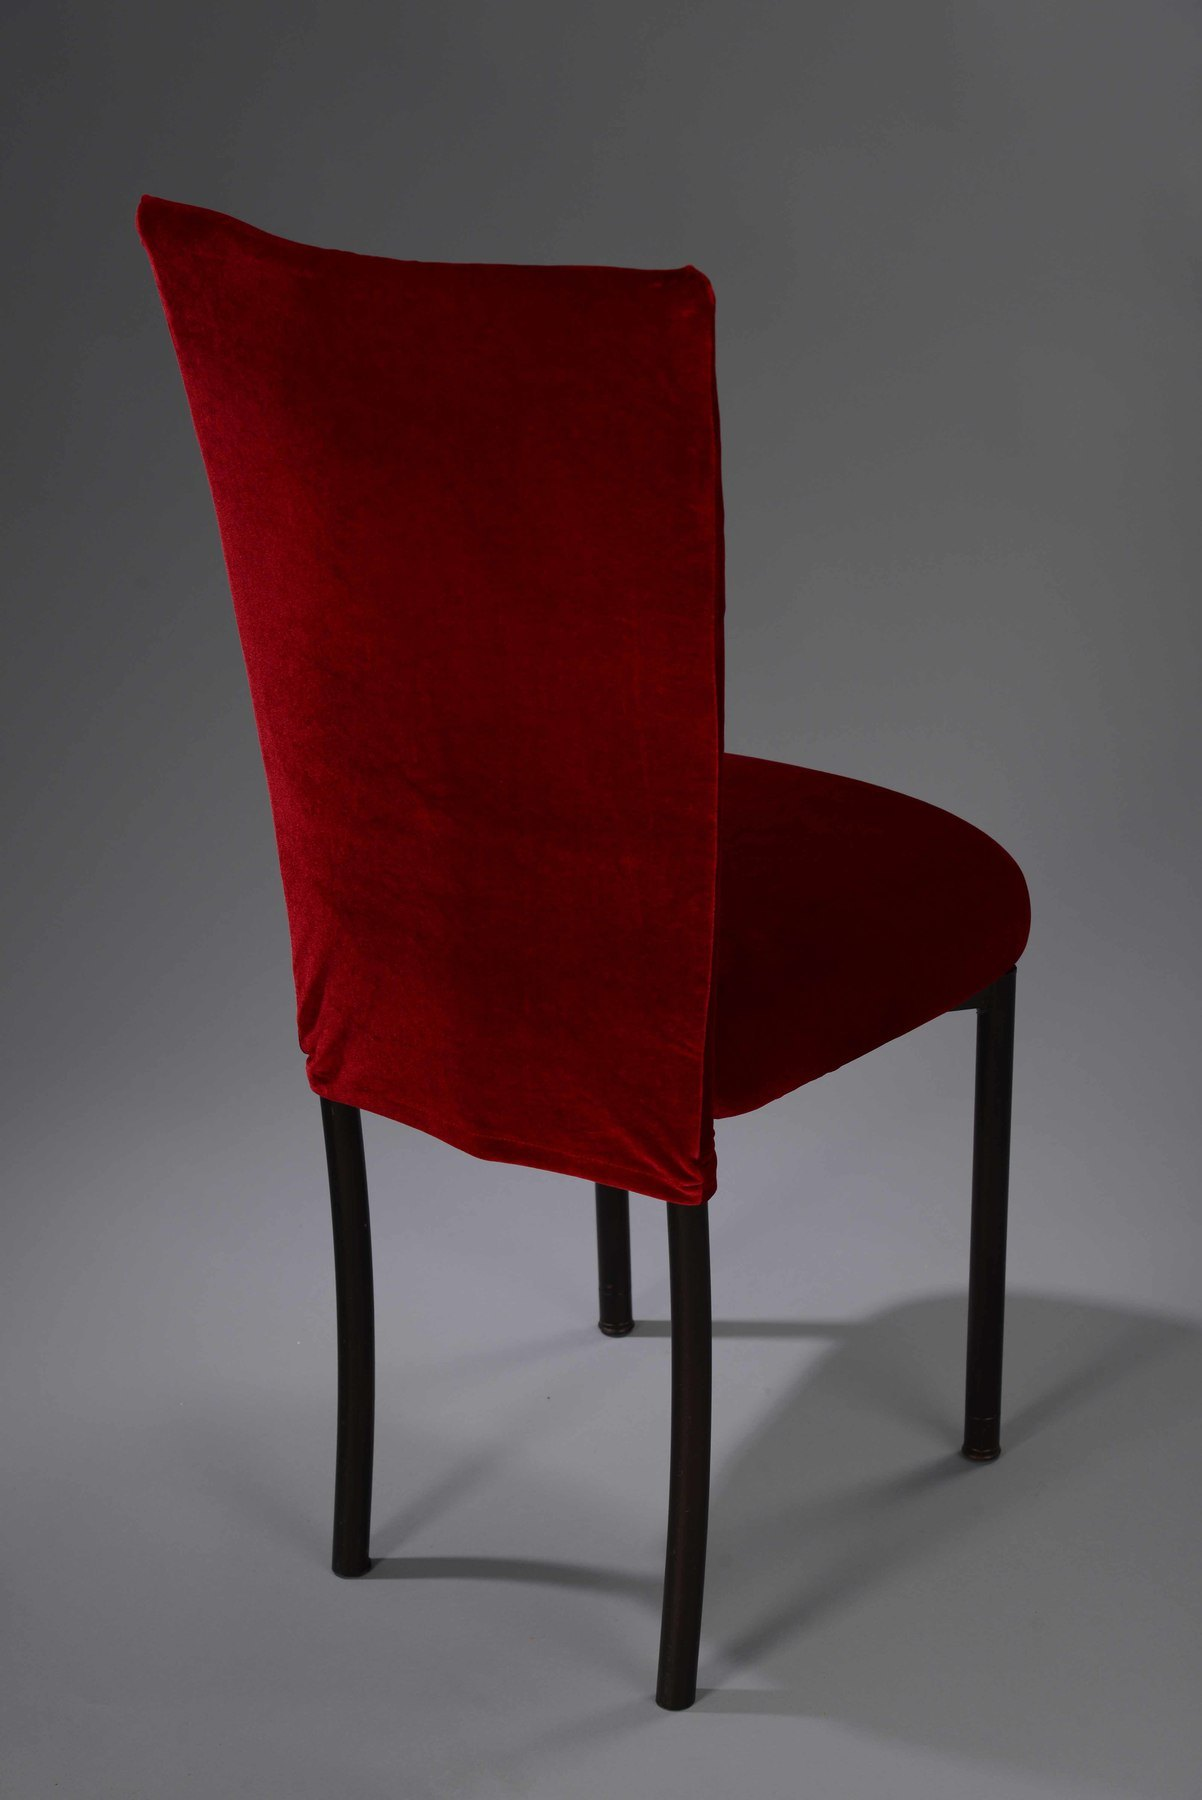 velvet chair covers wholesale china bassett accent chairs red chameleon cover nüage designs